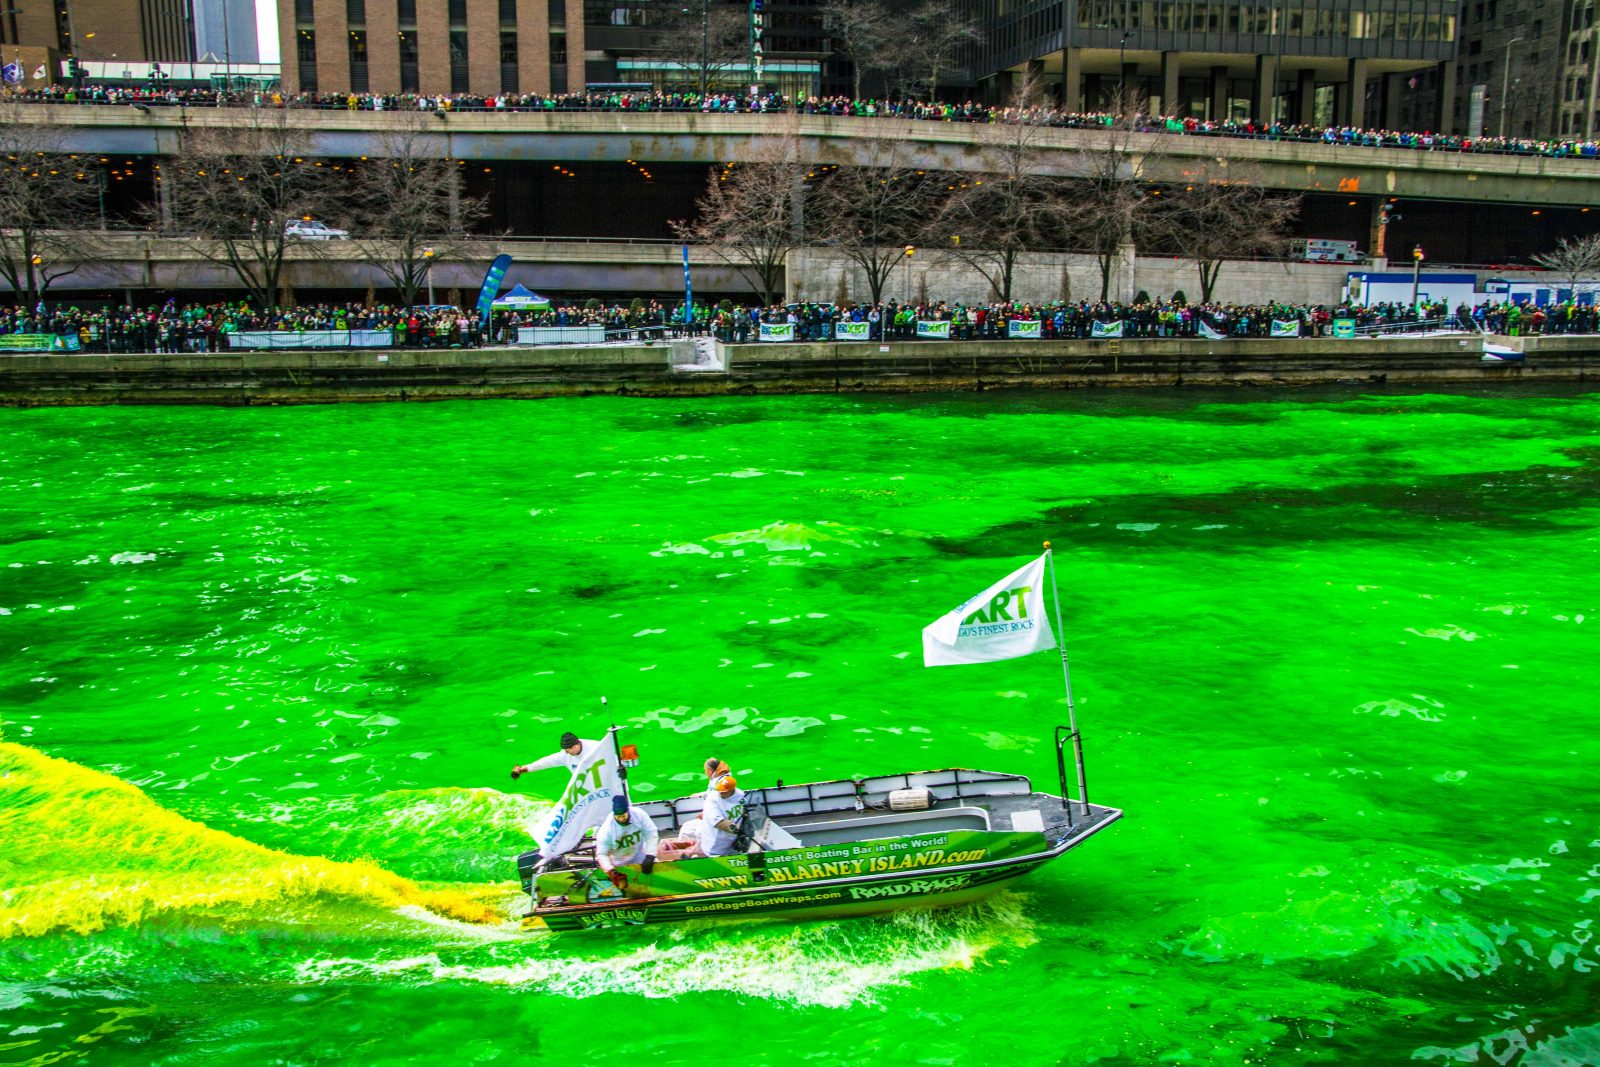 Dyeing the Chicago River